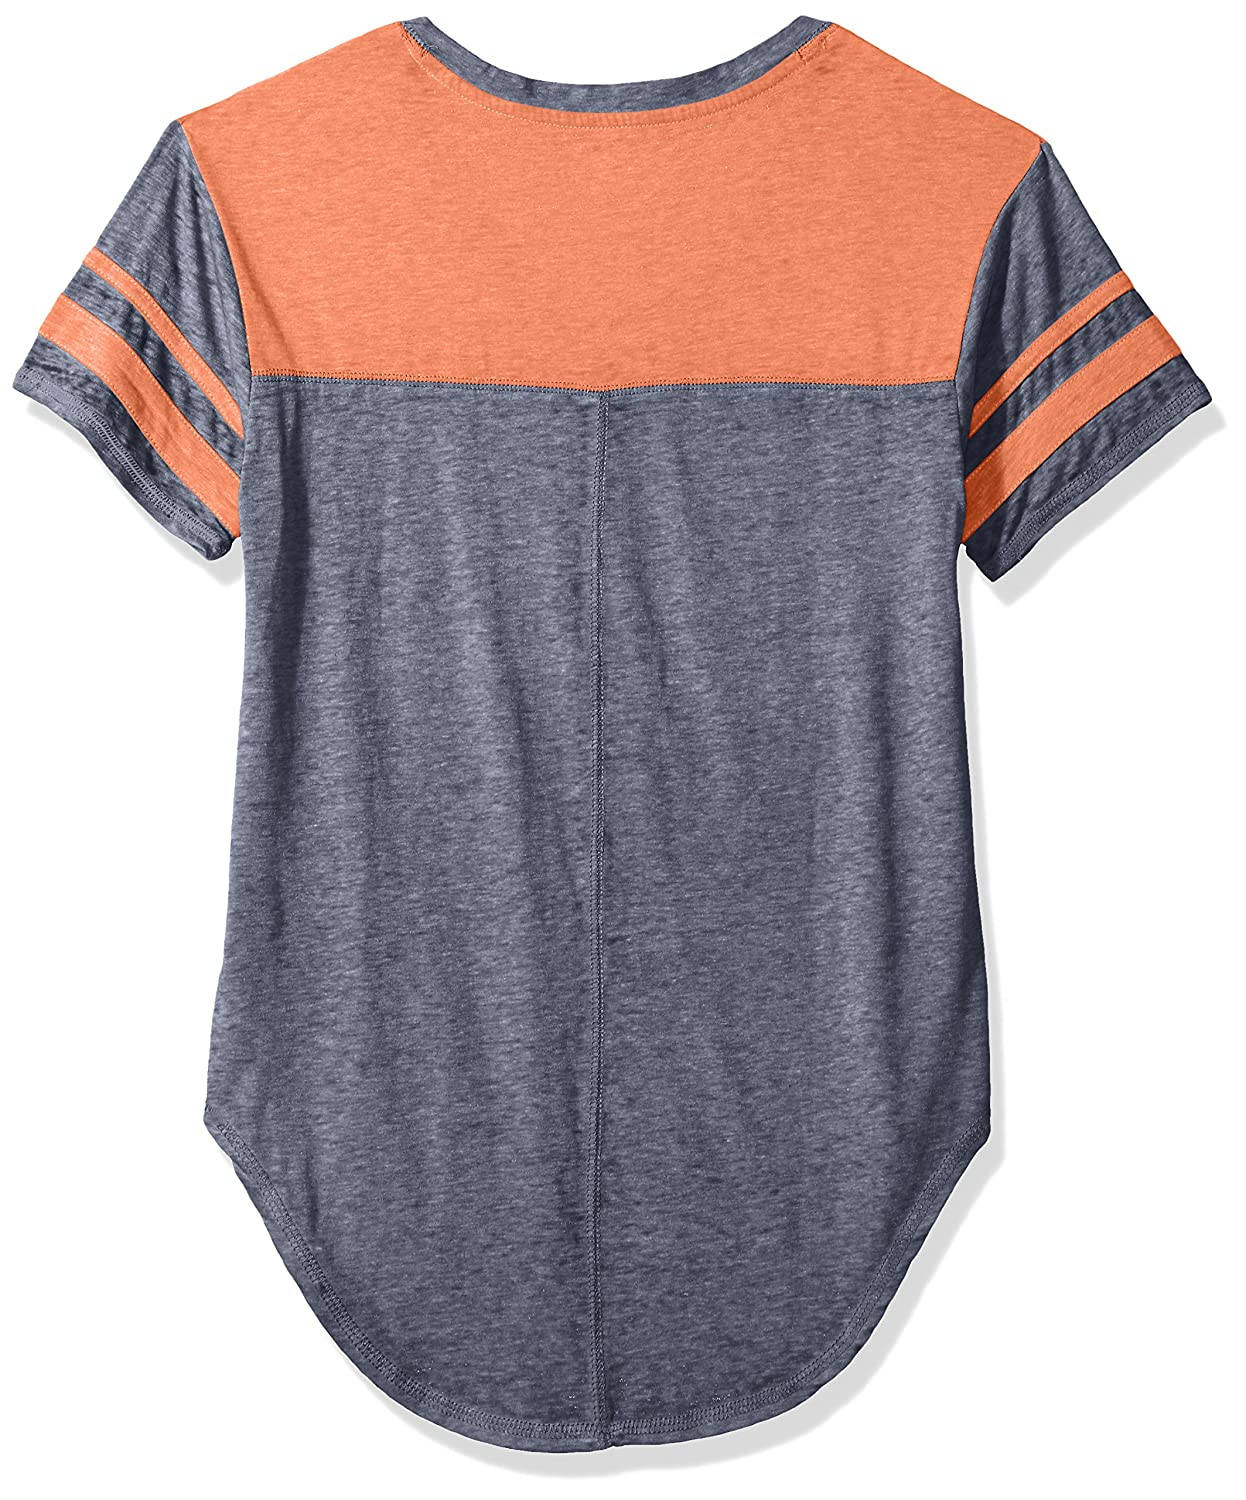 NCAA Virginia Cavaliers Juniors Outerstuff Vintage Short Sleeve Football Tee Large Team Color 11-13